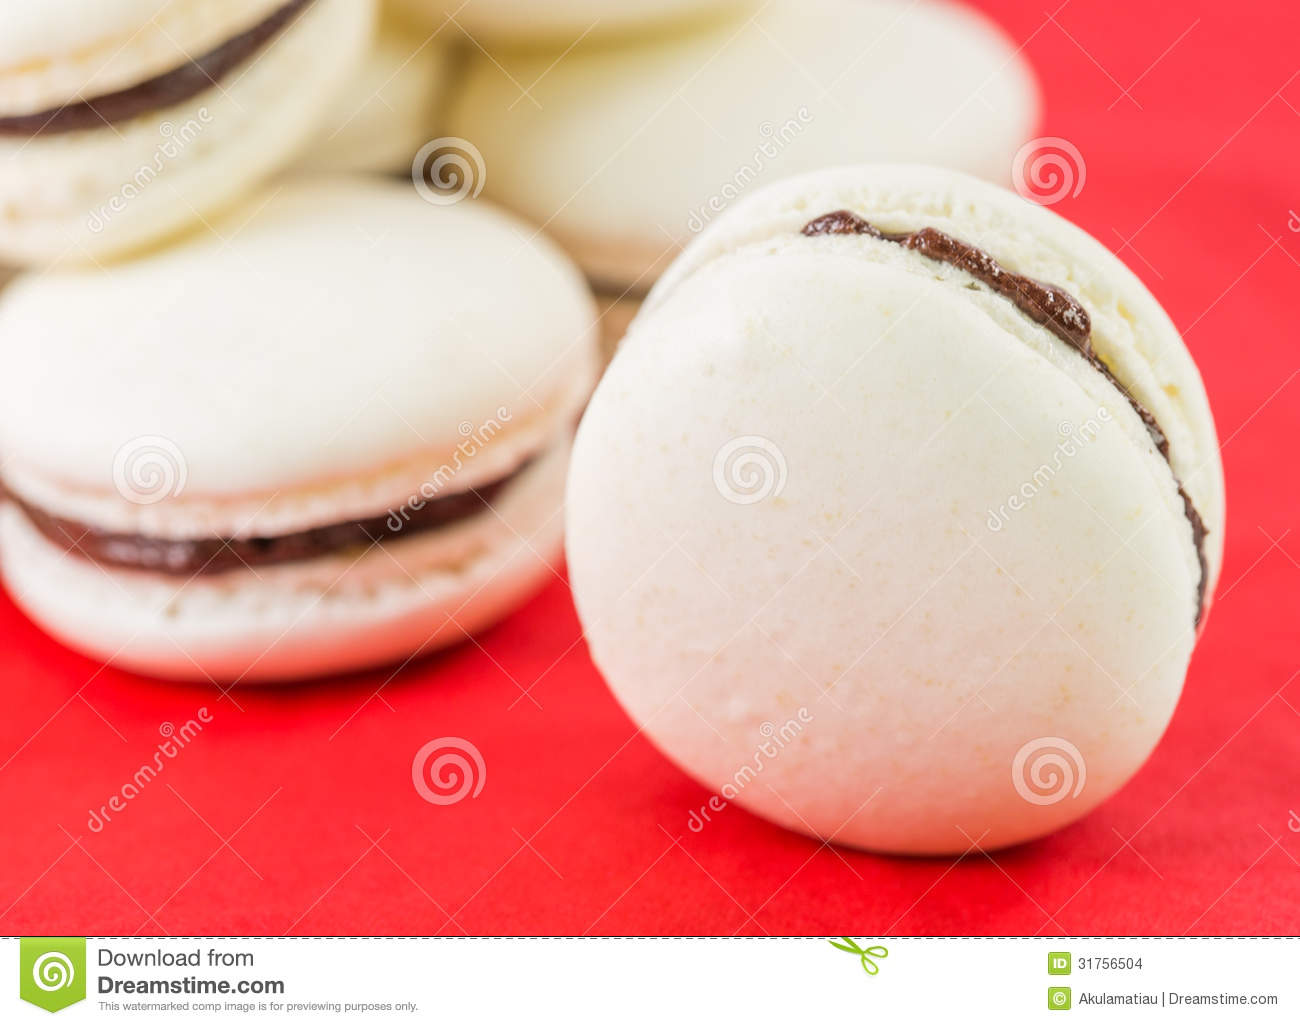 Vanilla Flavored French Macarons II Stock Images - Image: 31756504